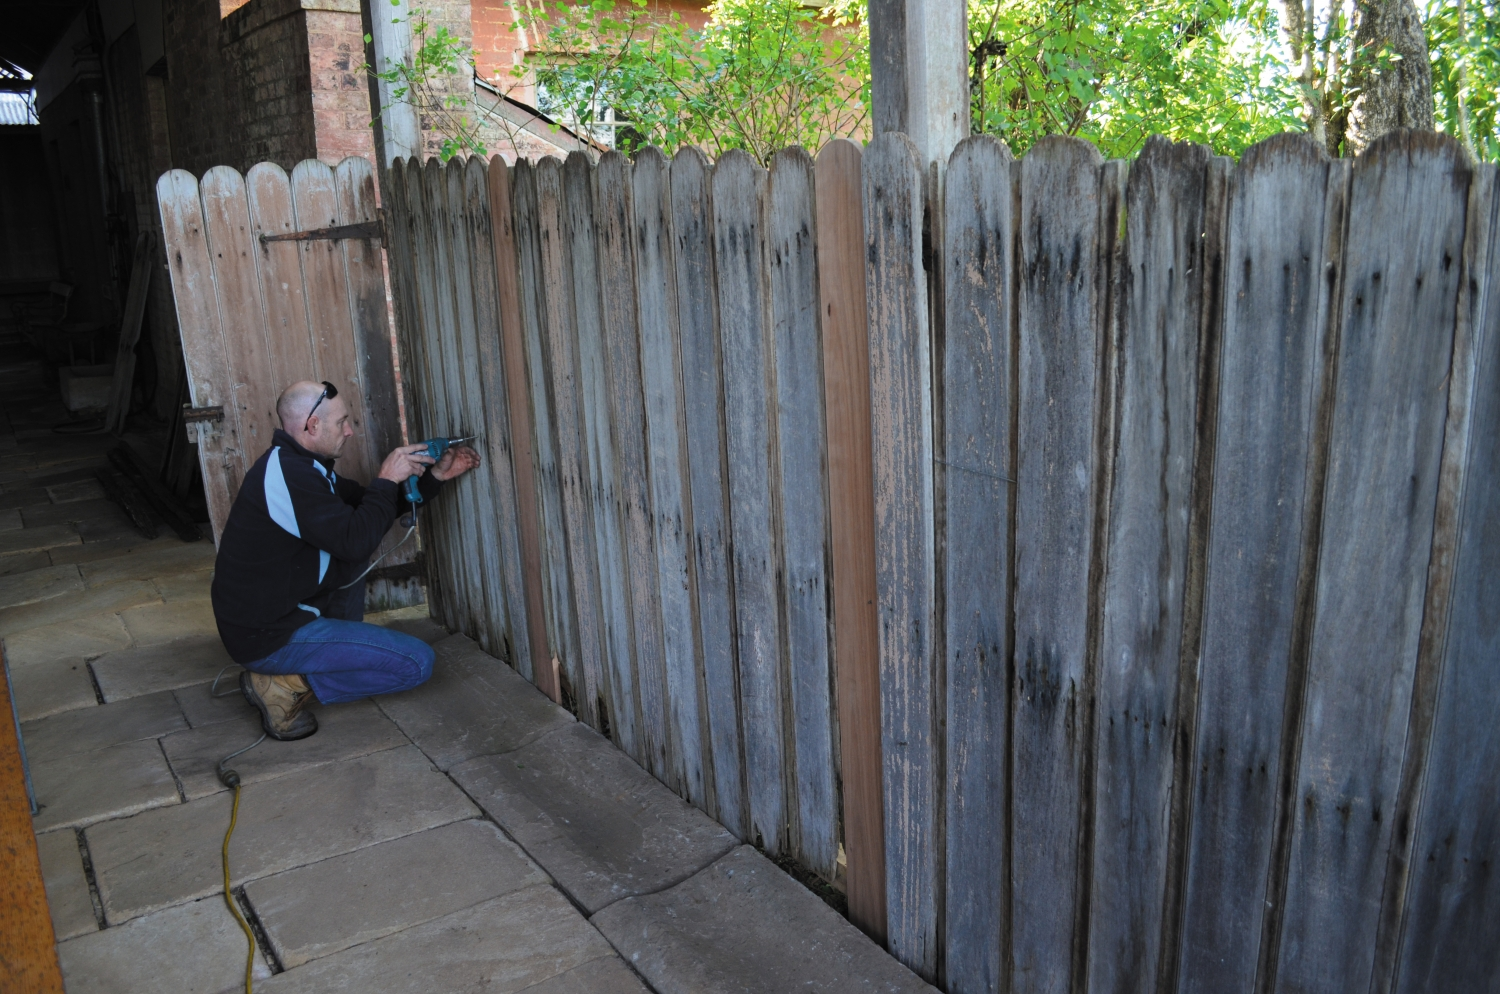 Man in blue pants and black shirt with power drill crouches in front of wooden fence